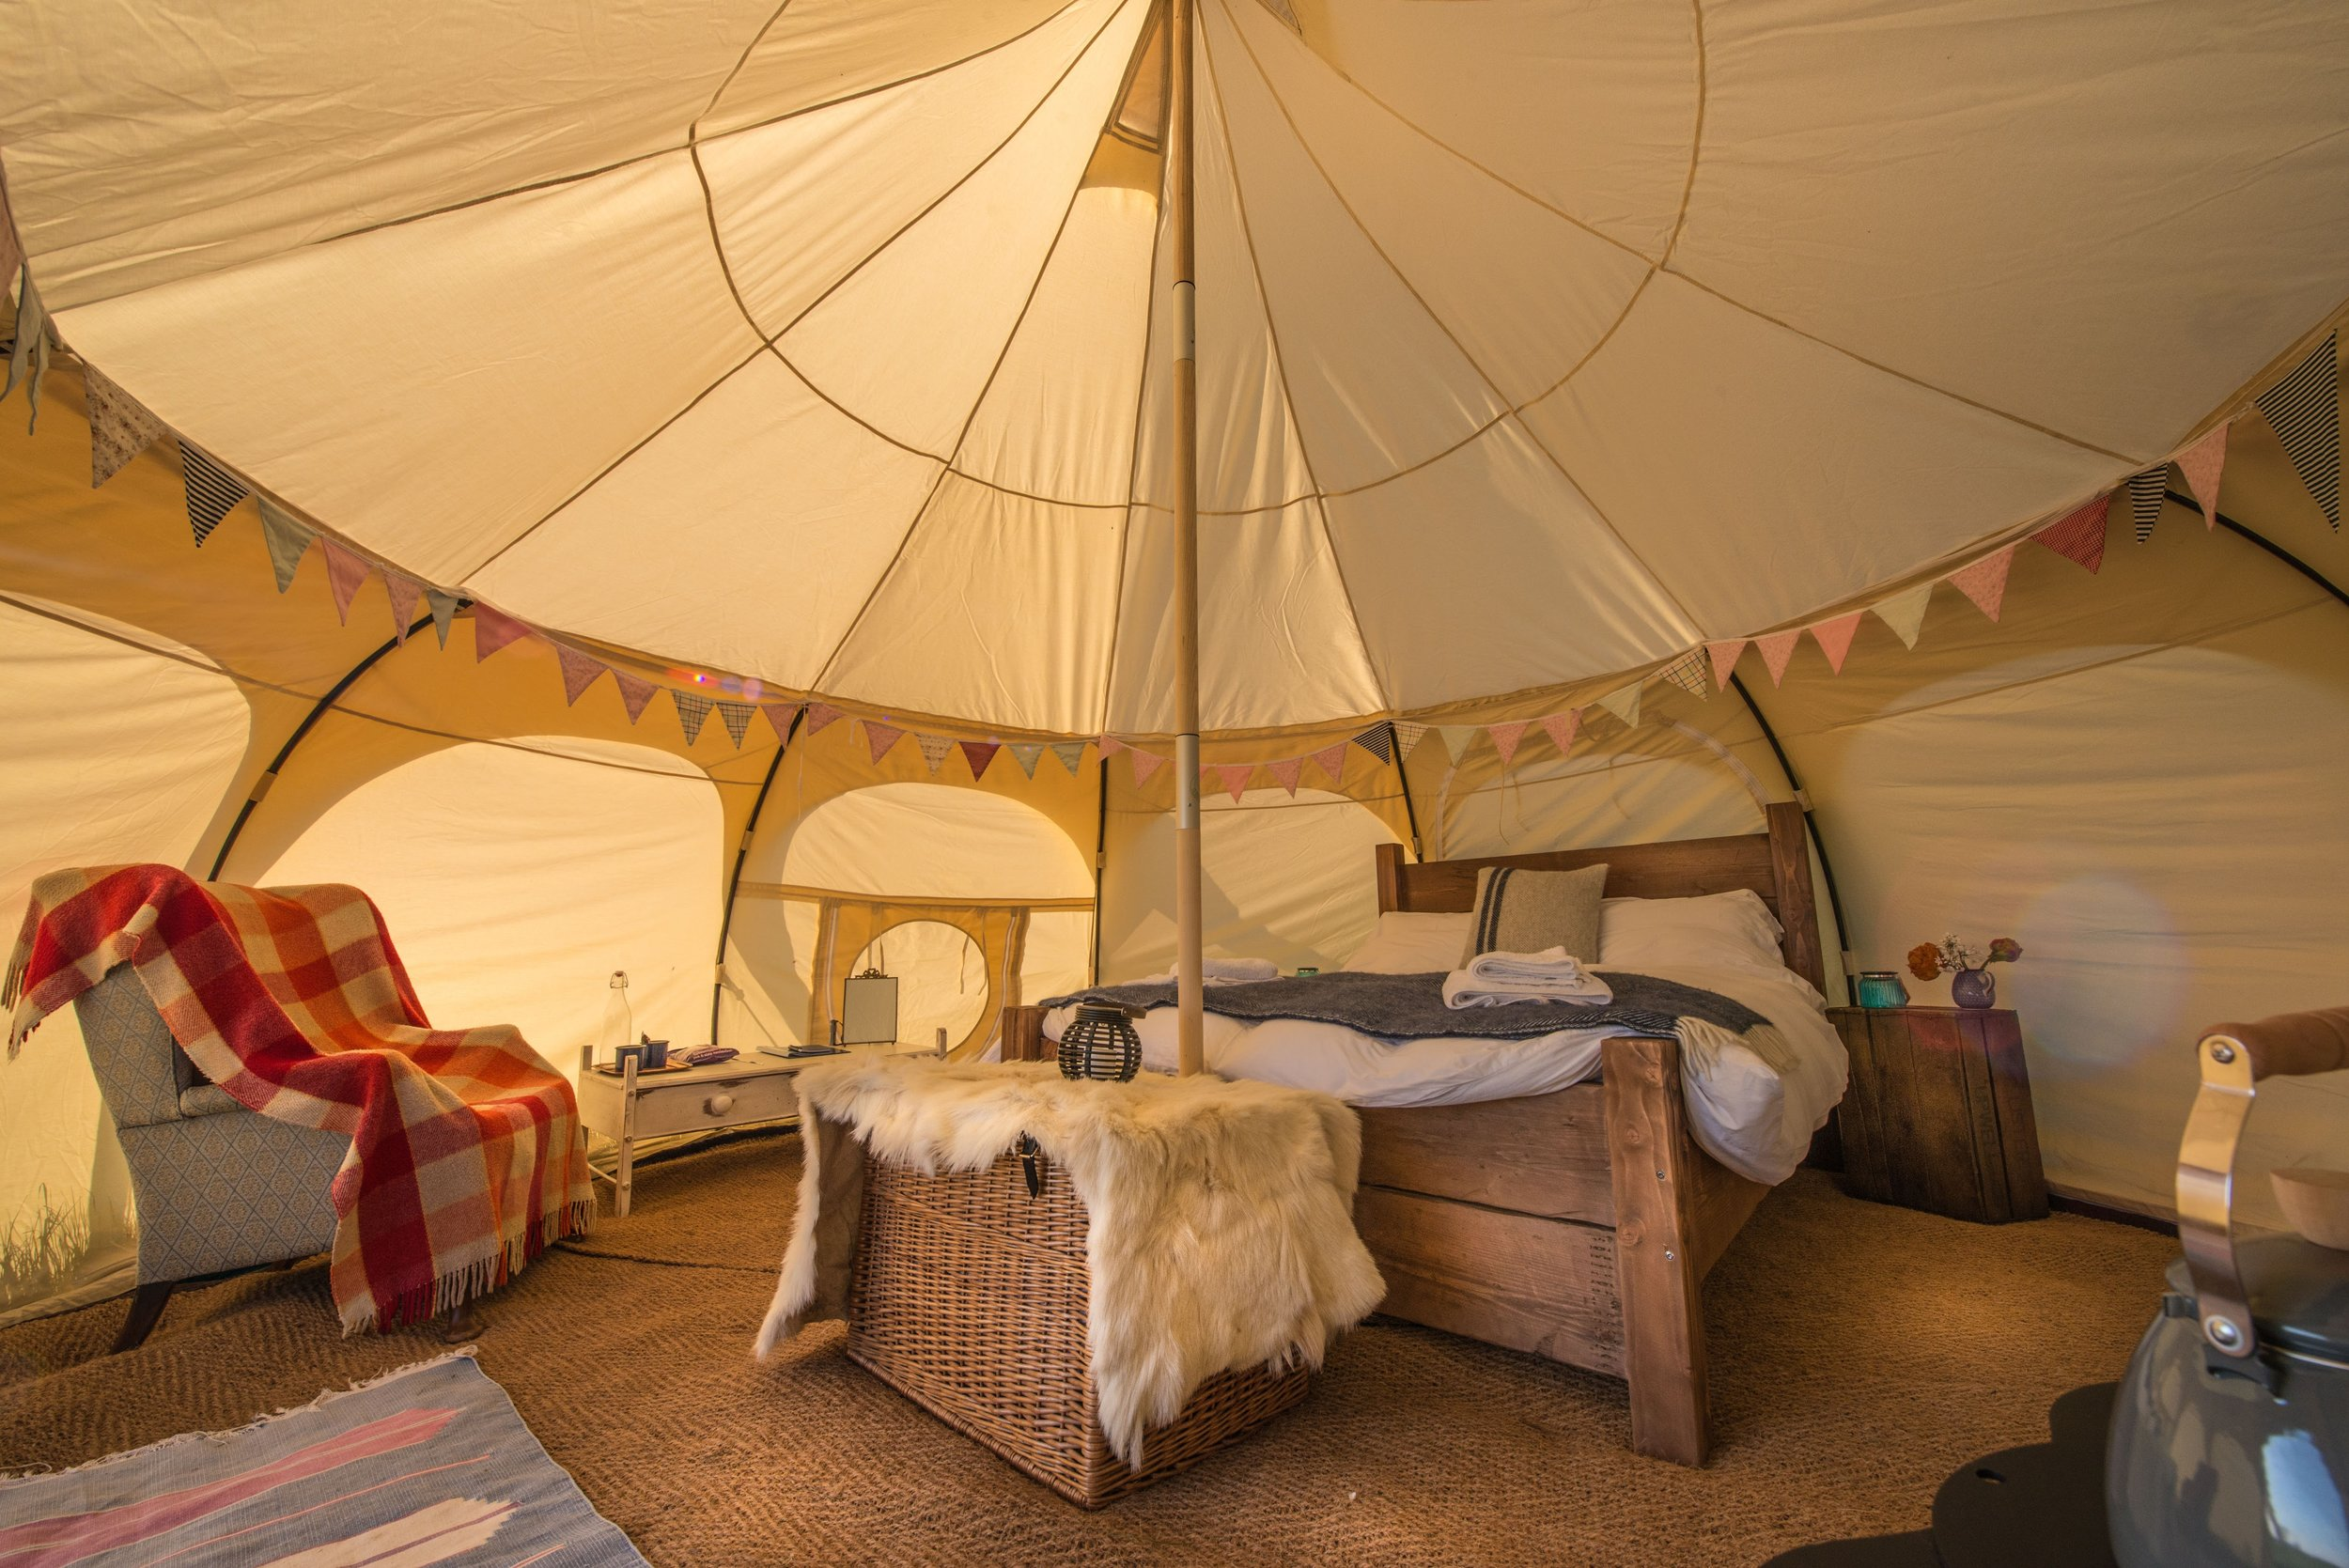 Hill Farm Glamping - - Harry Gladwin